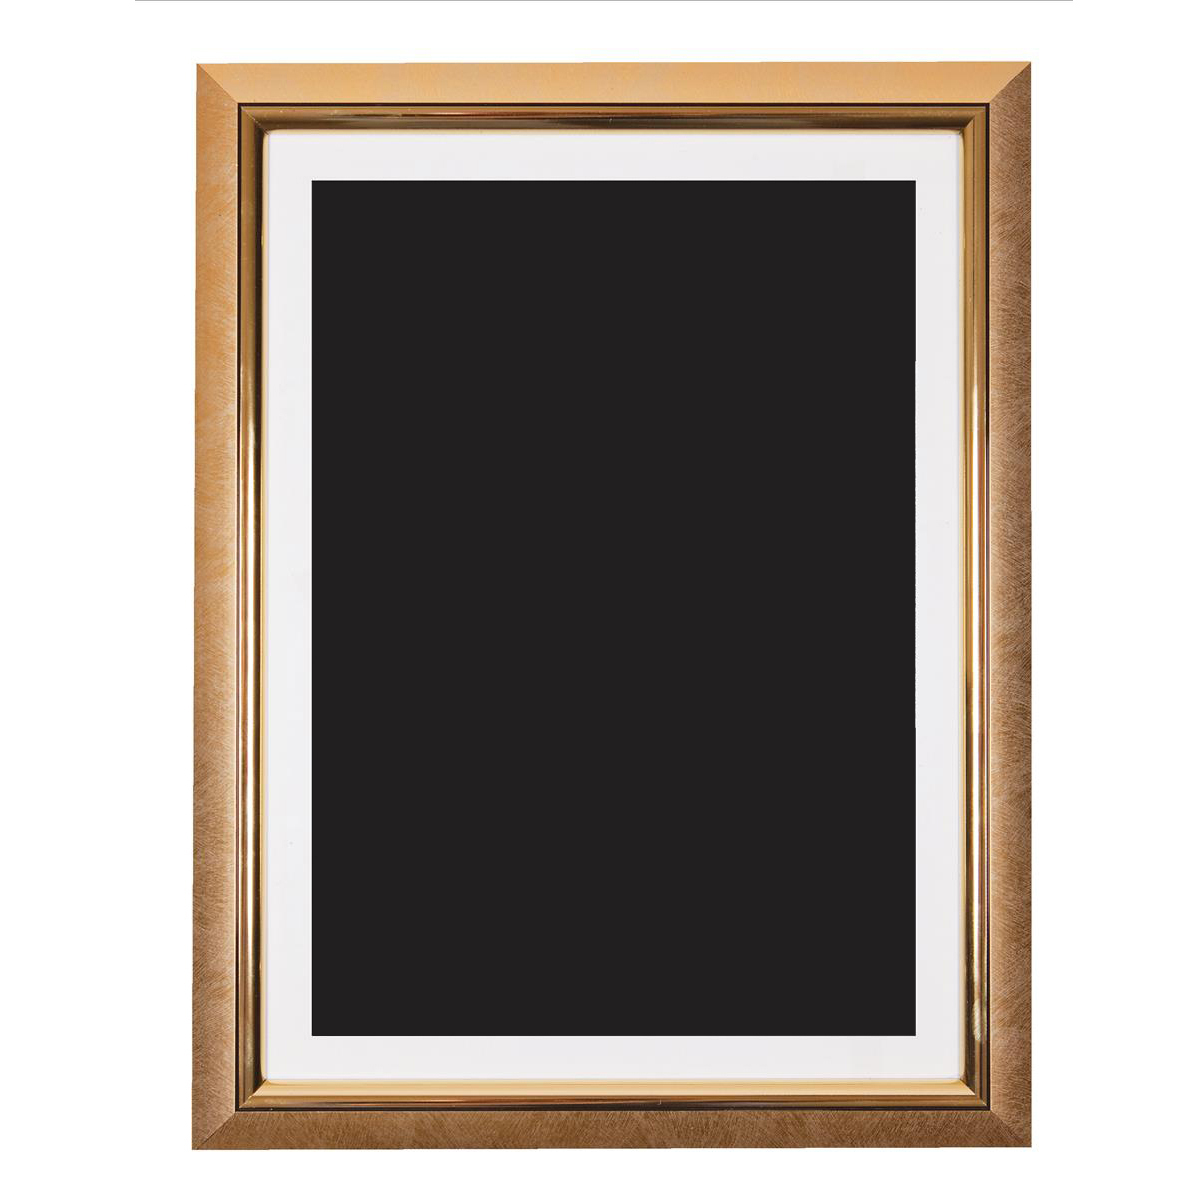 5 Star Facilities Snap De Luxe Certificate Frame Holds Standard A4 Certificates 260x20x347mm Gold